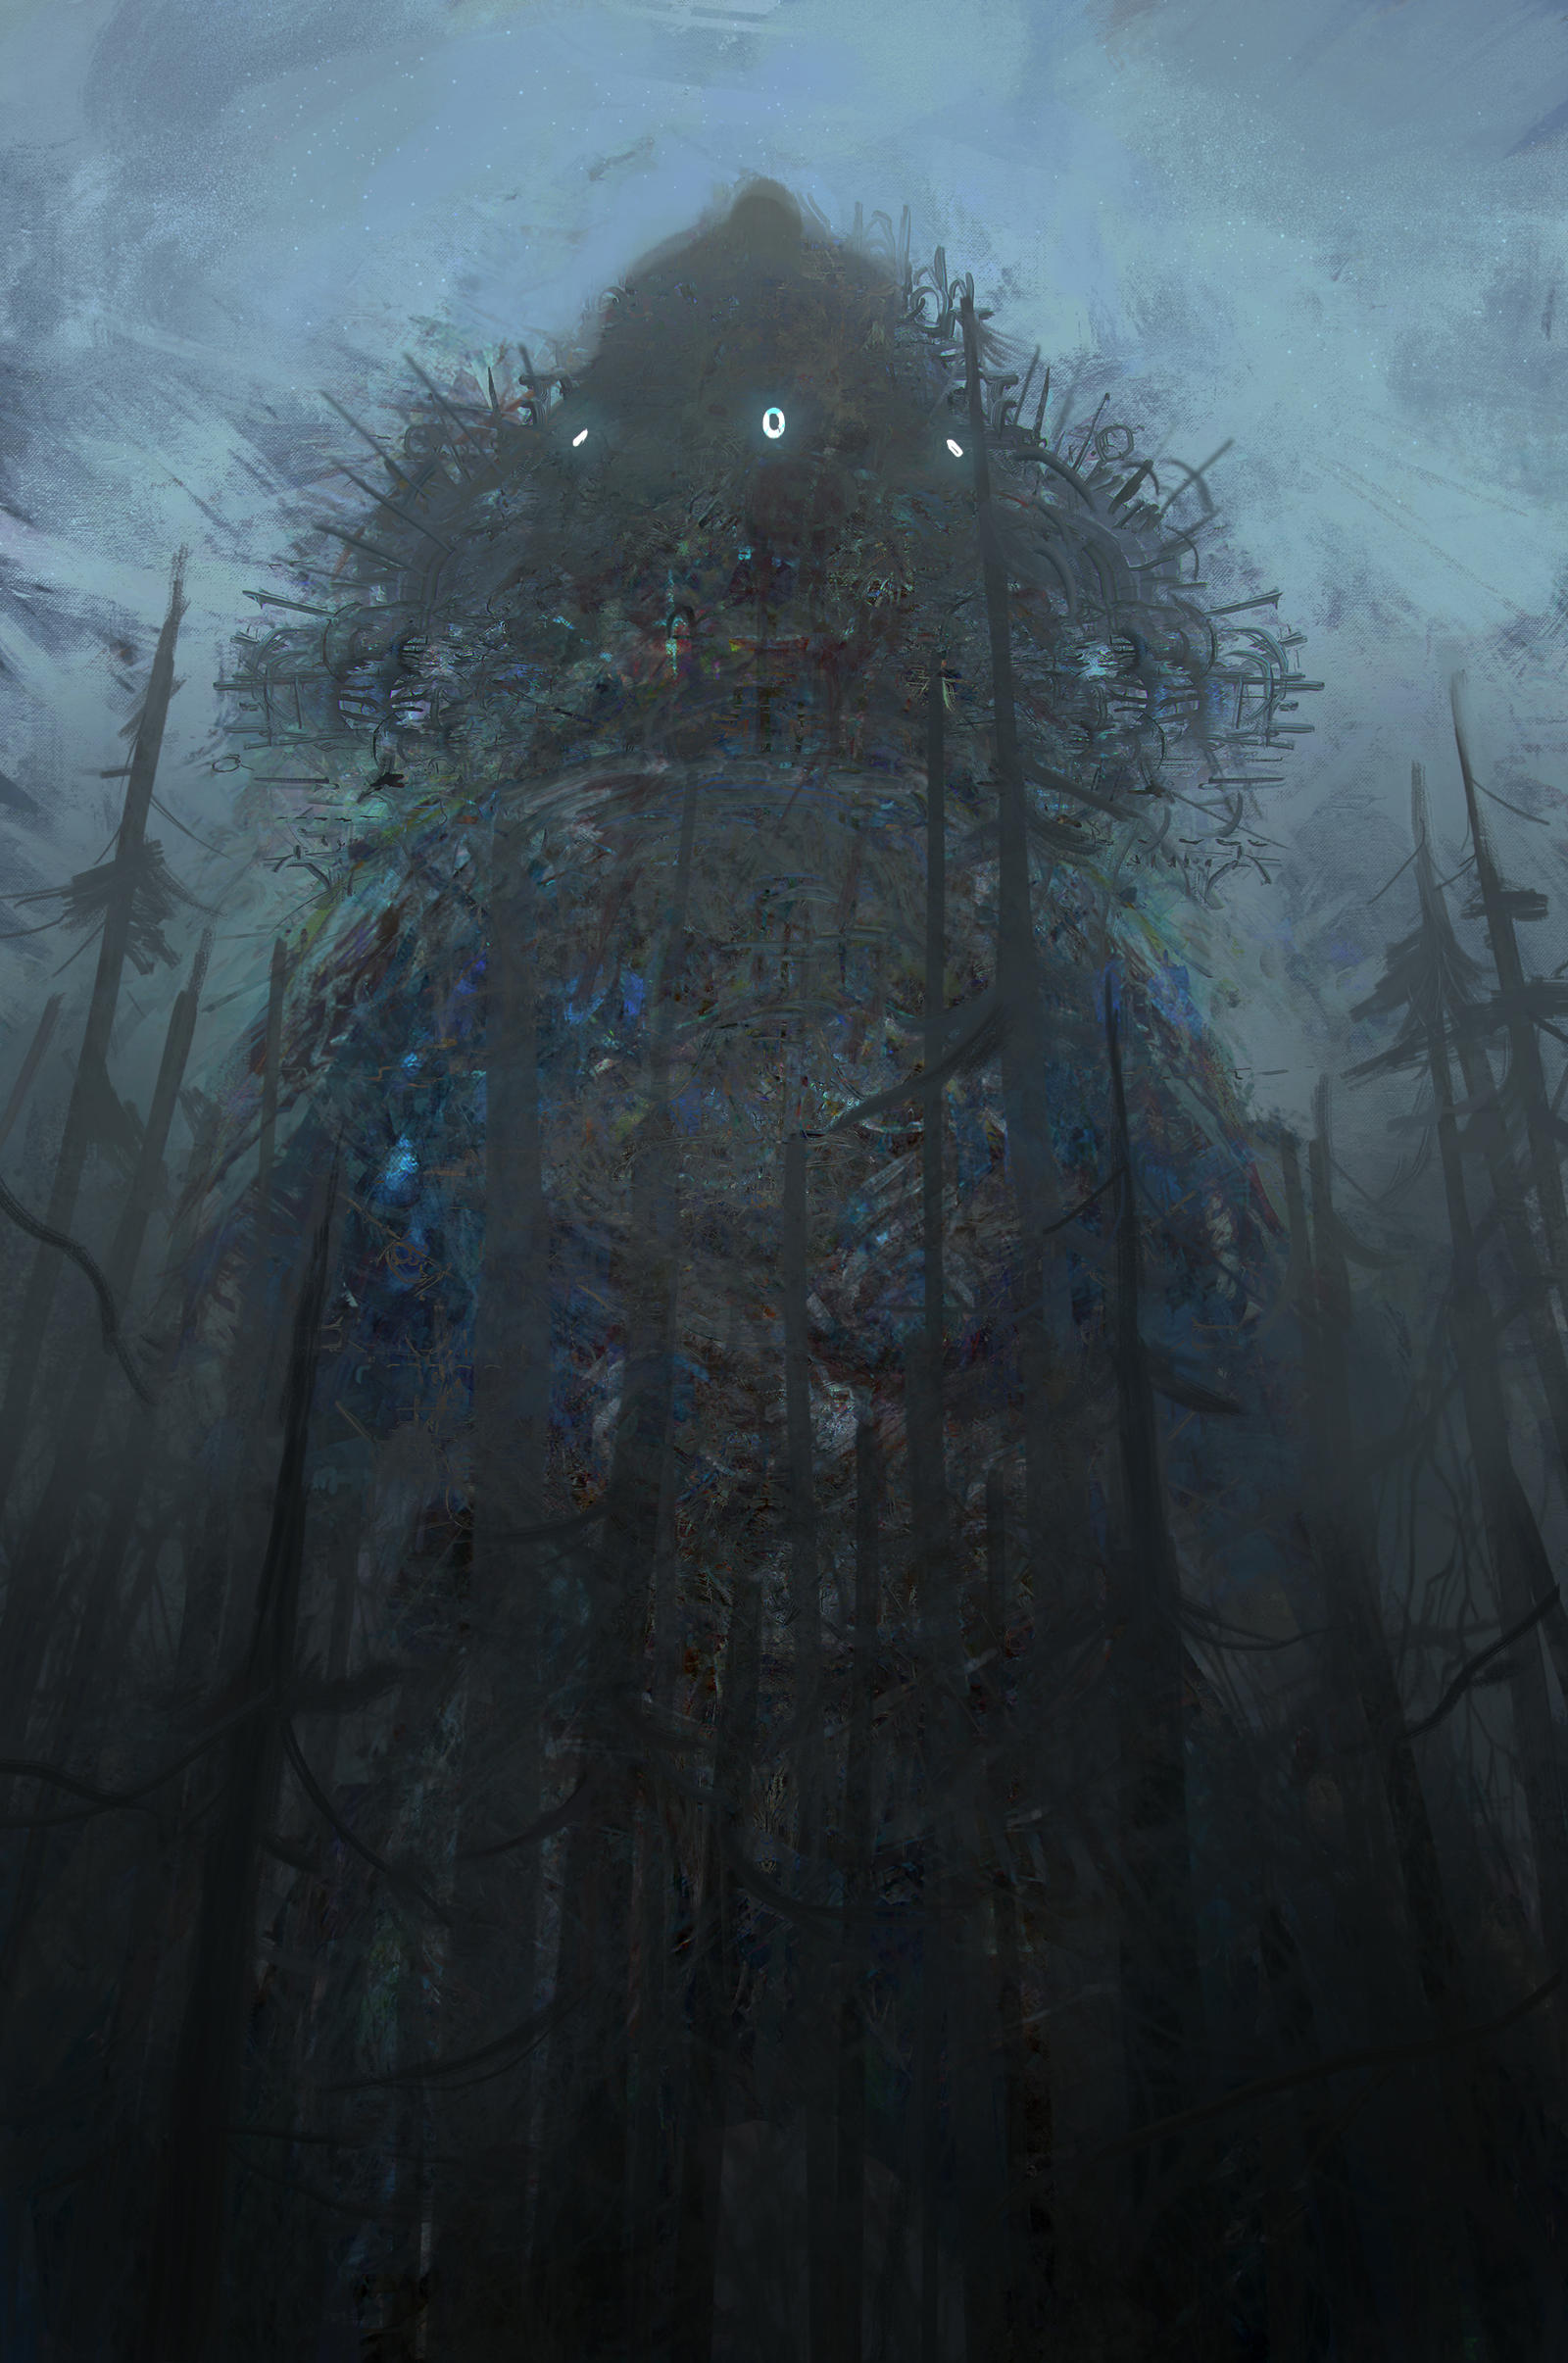 weird giant 8 by Chenthooran